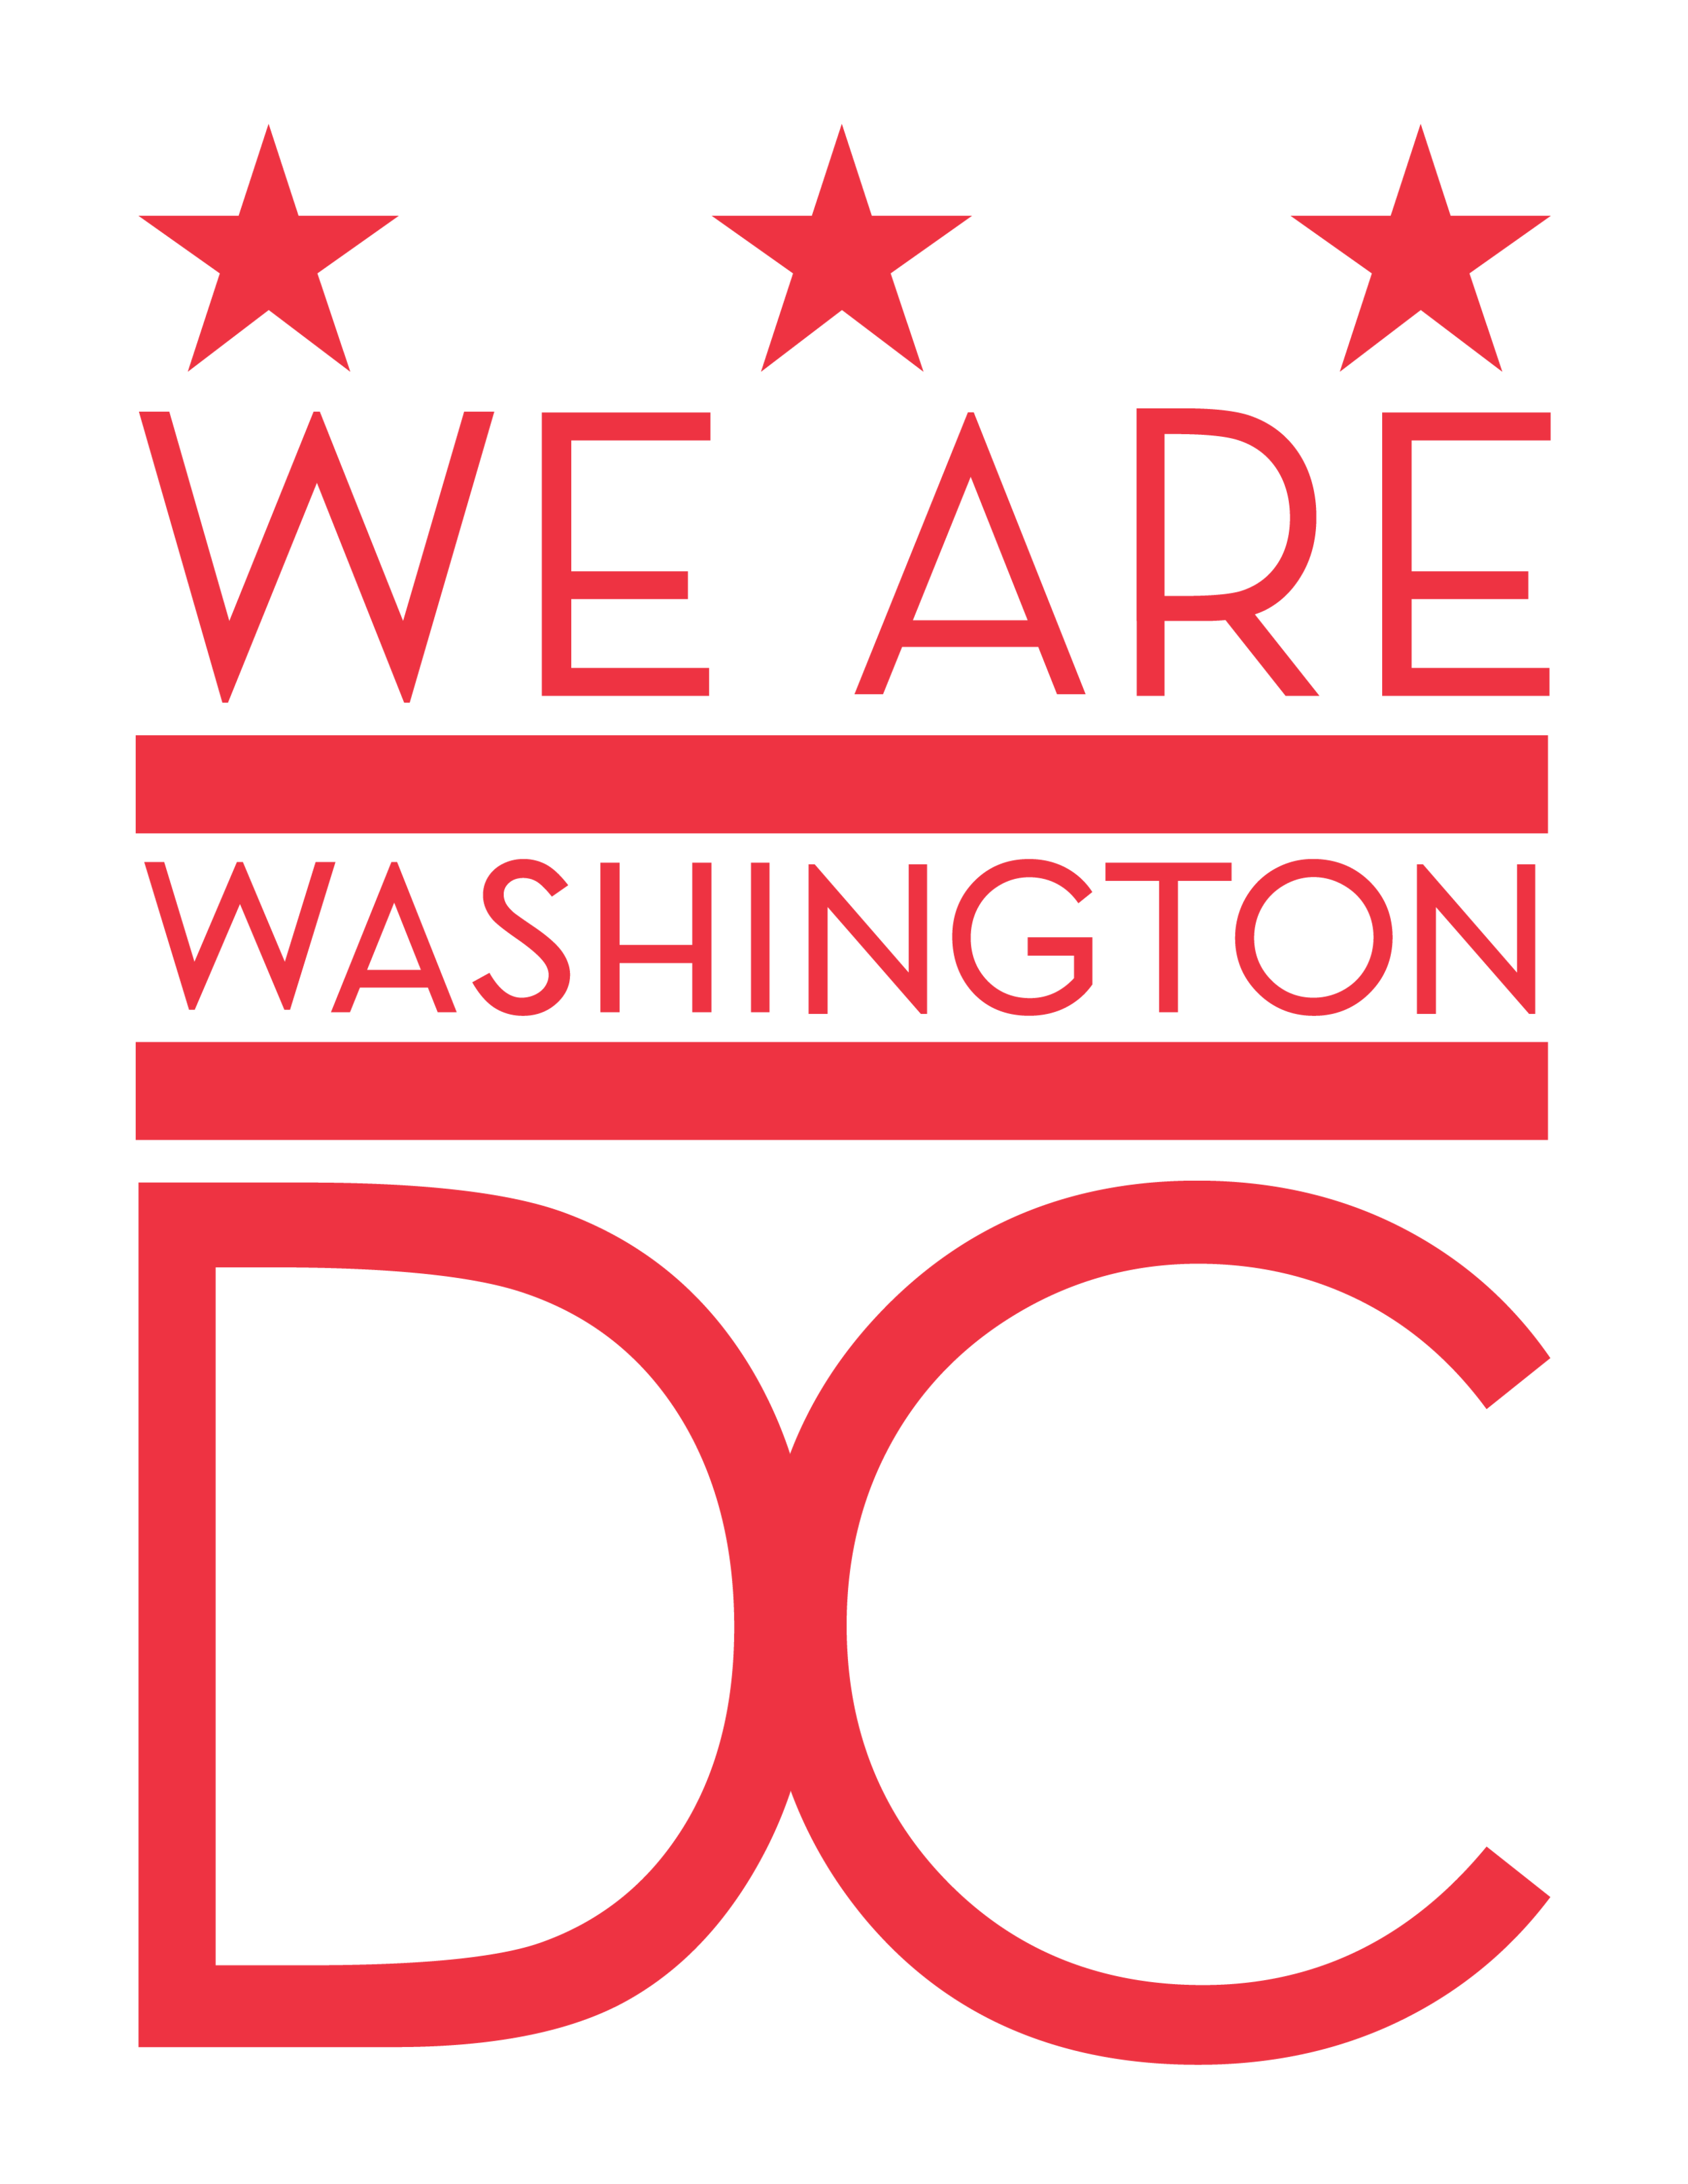 WE ARE DC_8x10_Red_PNG.png